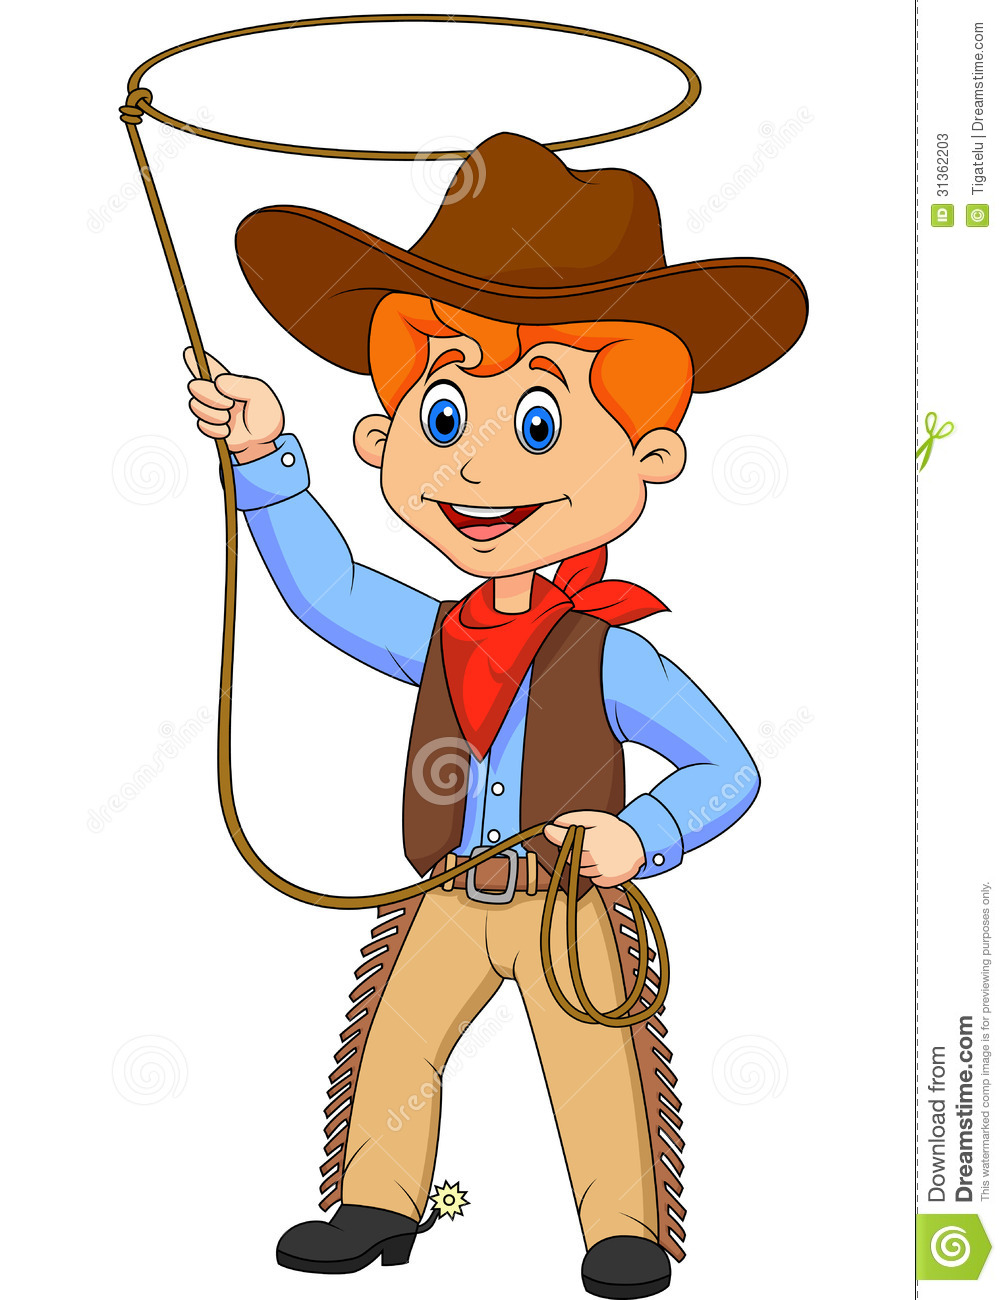 Cowboy Kid Cartoon Twirling A Lasso Stock Photos - Image: 31362203